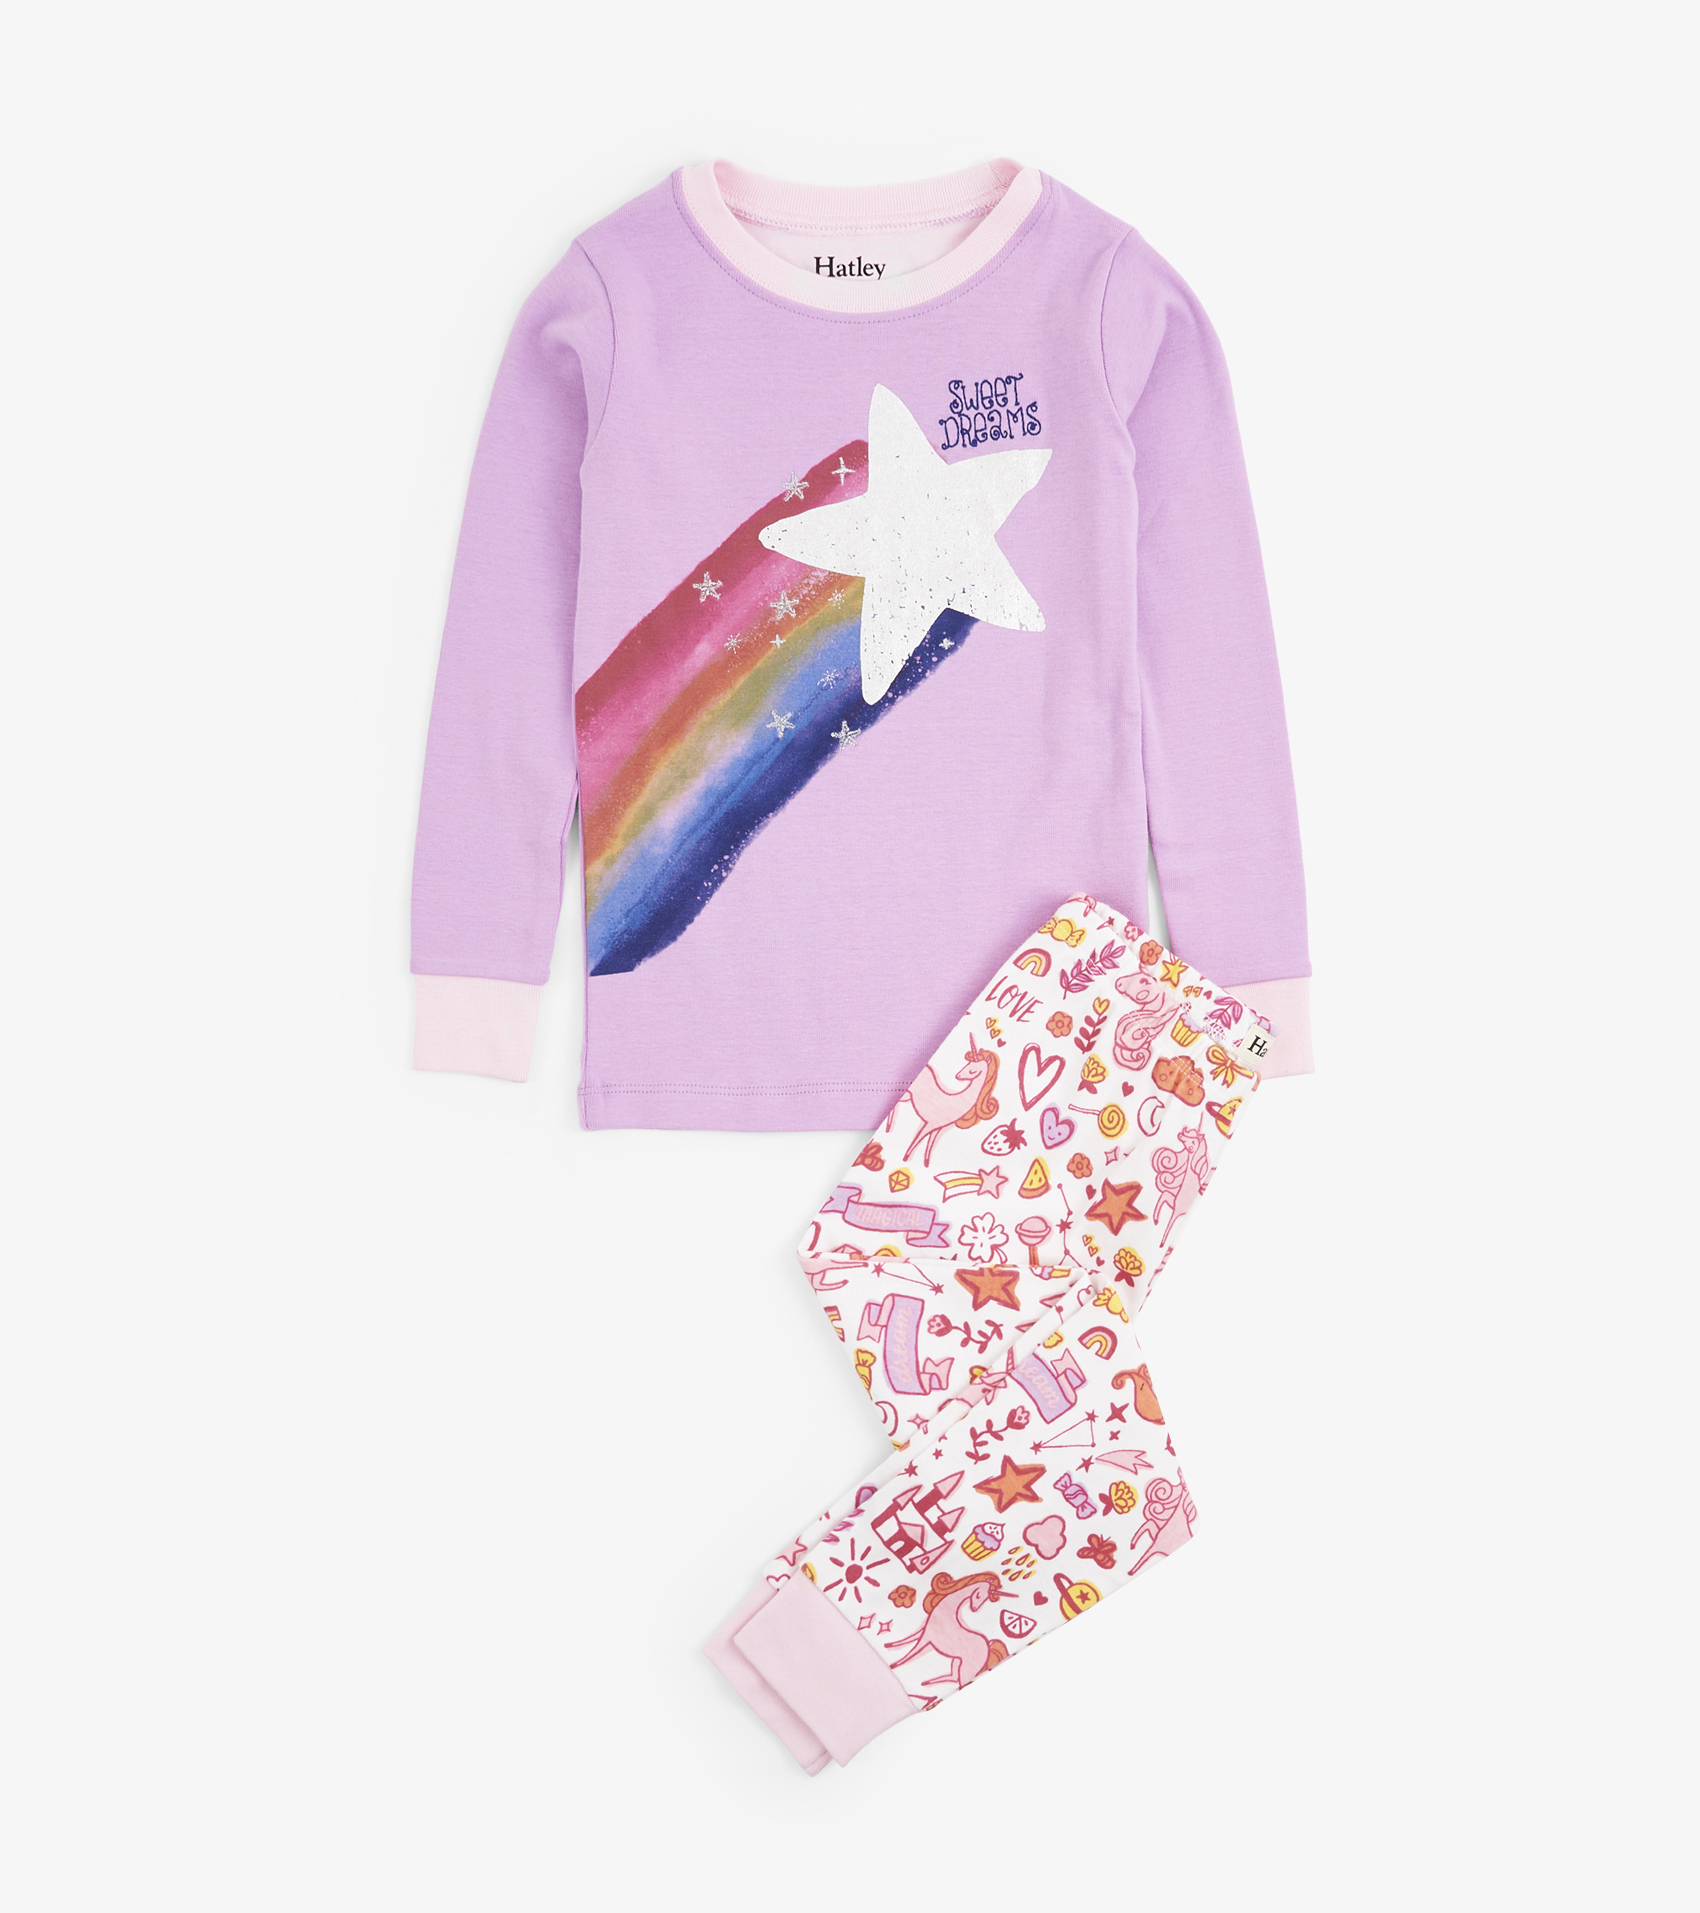 bf36cf8bb43f Home > Clothing & Accessories > Trendy Girl Outfits > Unicorn Doodles  Organic Cotton Pajama Set